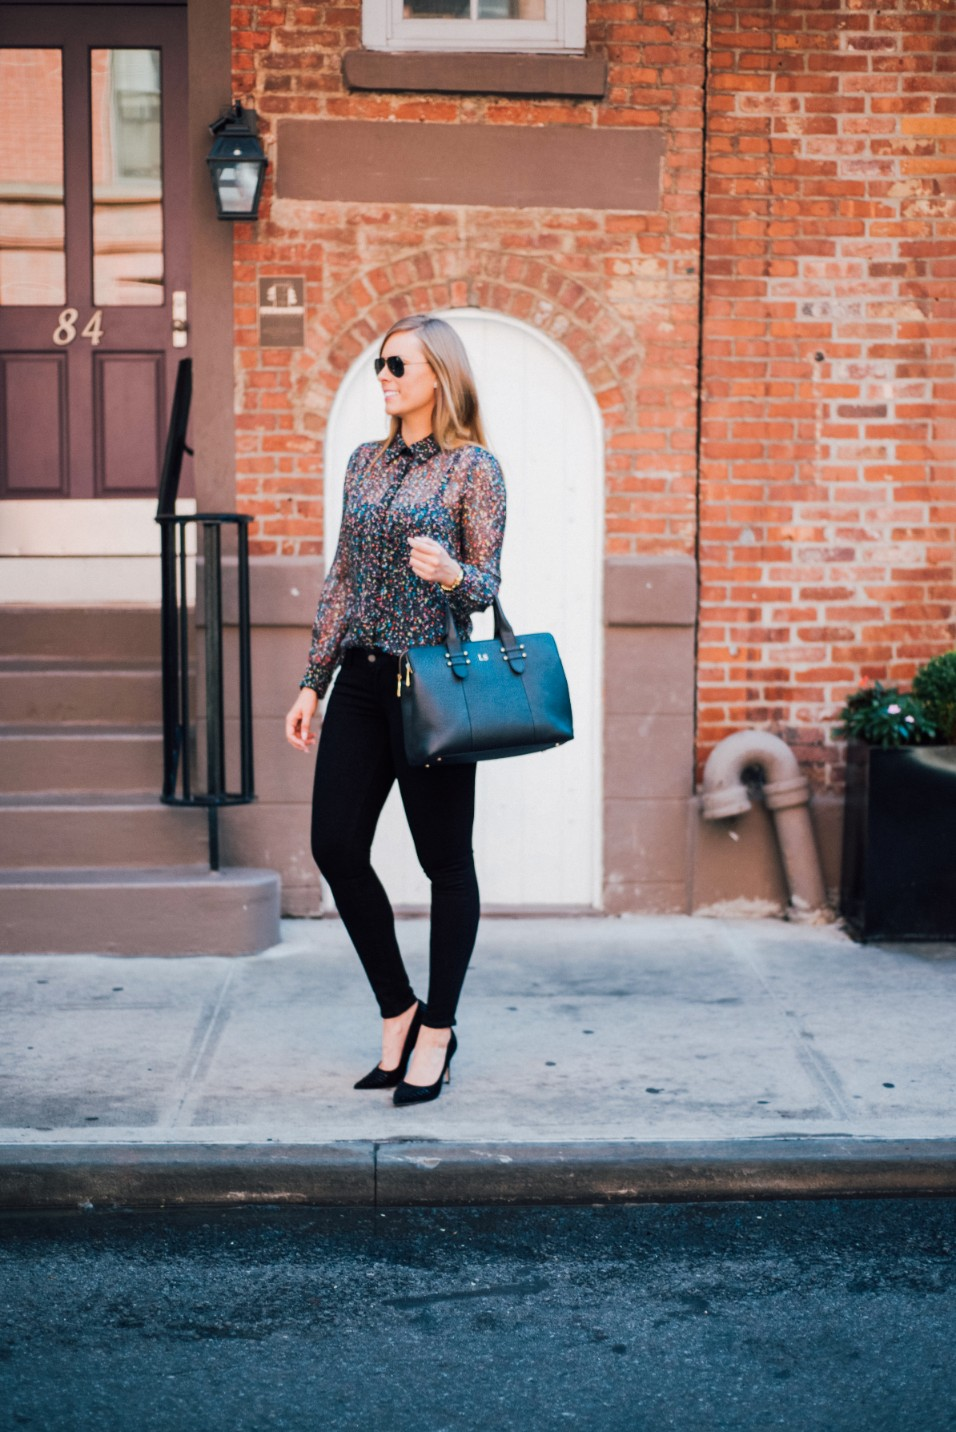 Paige Verdugo Skinny Jeans dvf blouse gigi new york monogram bag french connection heels west village new york blogger stylish outfit ideas lauren slade style elixir blog | Paige Verdugo Jeans and DVF Blouse featured by popular US style blogger, Style Elixir